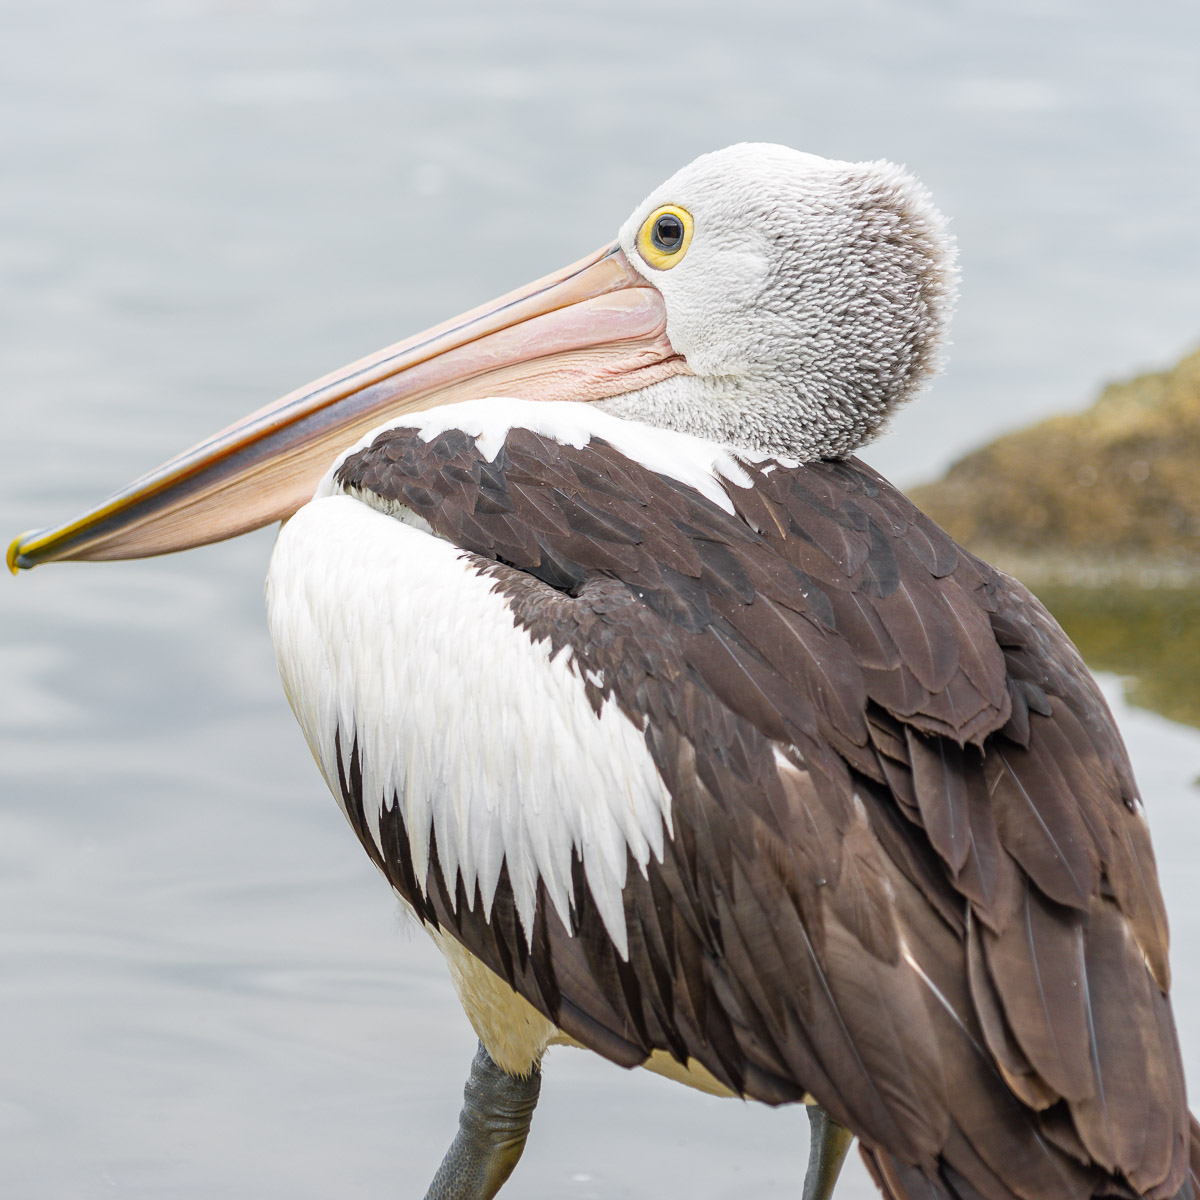 This is a photograph of a pelican on Lake Ginninderra